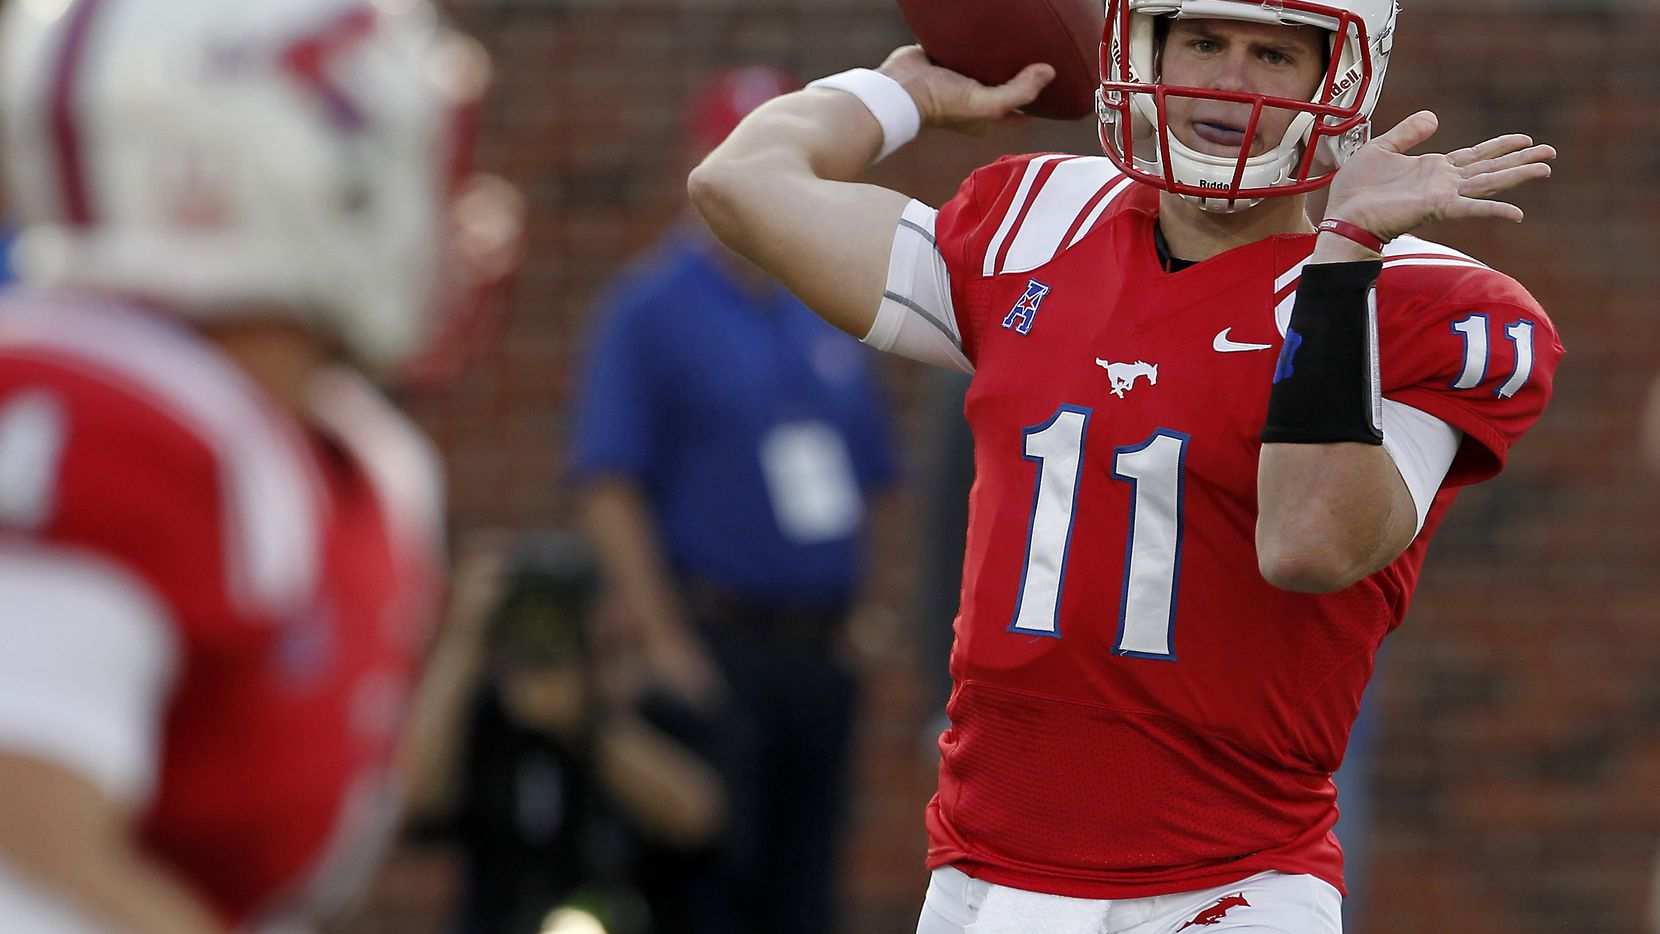 Former Texas Smu Qb Garrett Gilbert Signs With Oakland Raiders